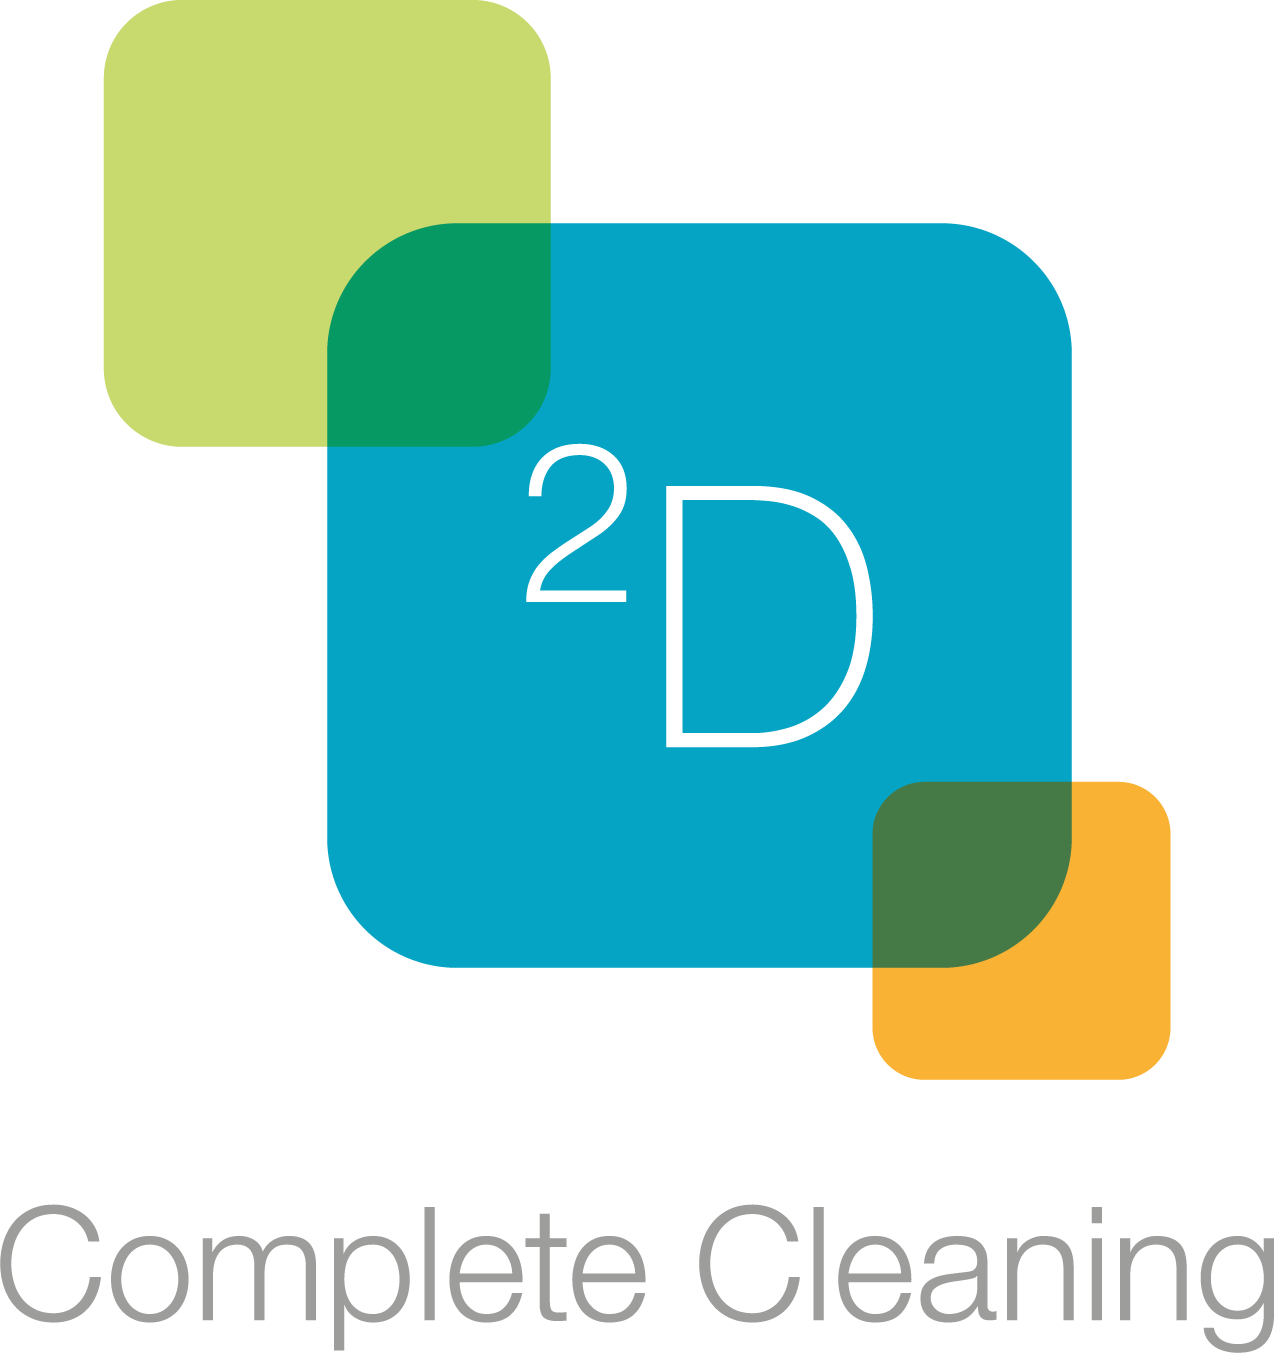 2D Complete Cleaning